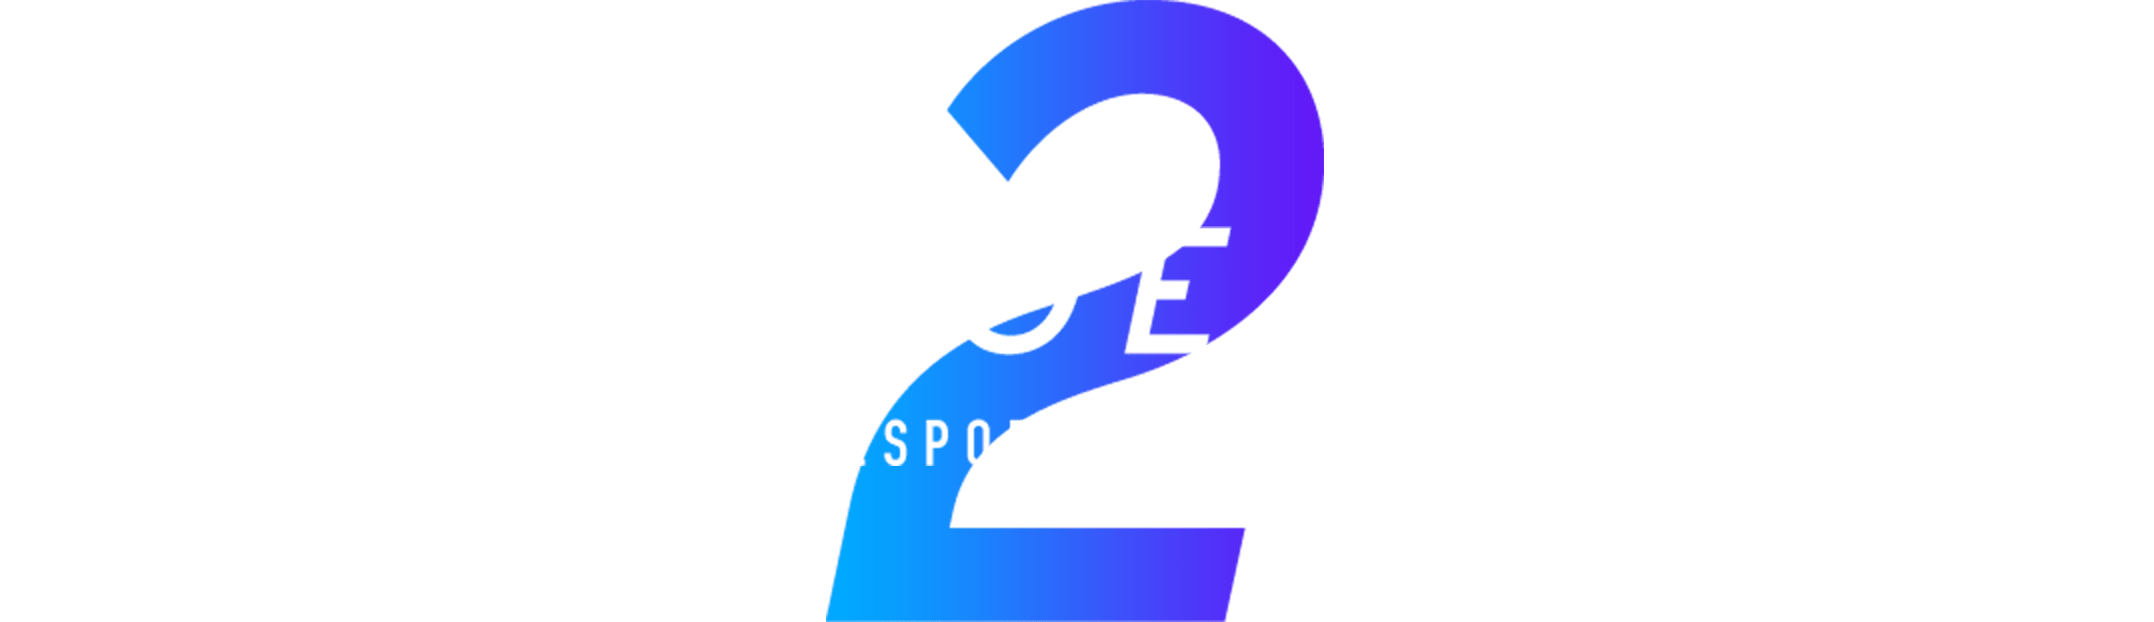 THE eRACE BATTLE 2 Racing Esports Competition